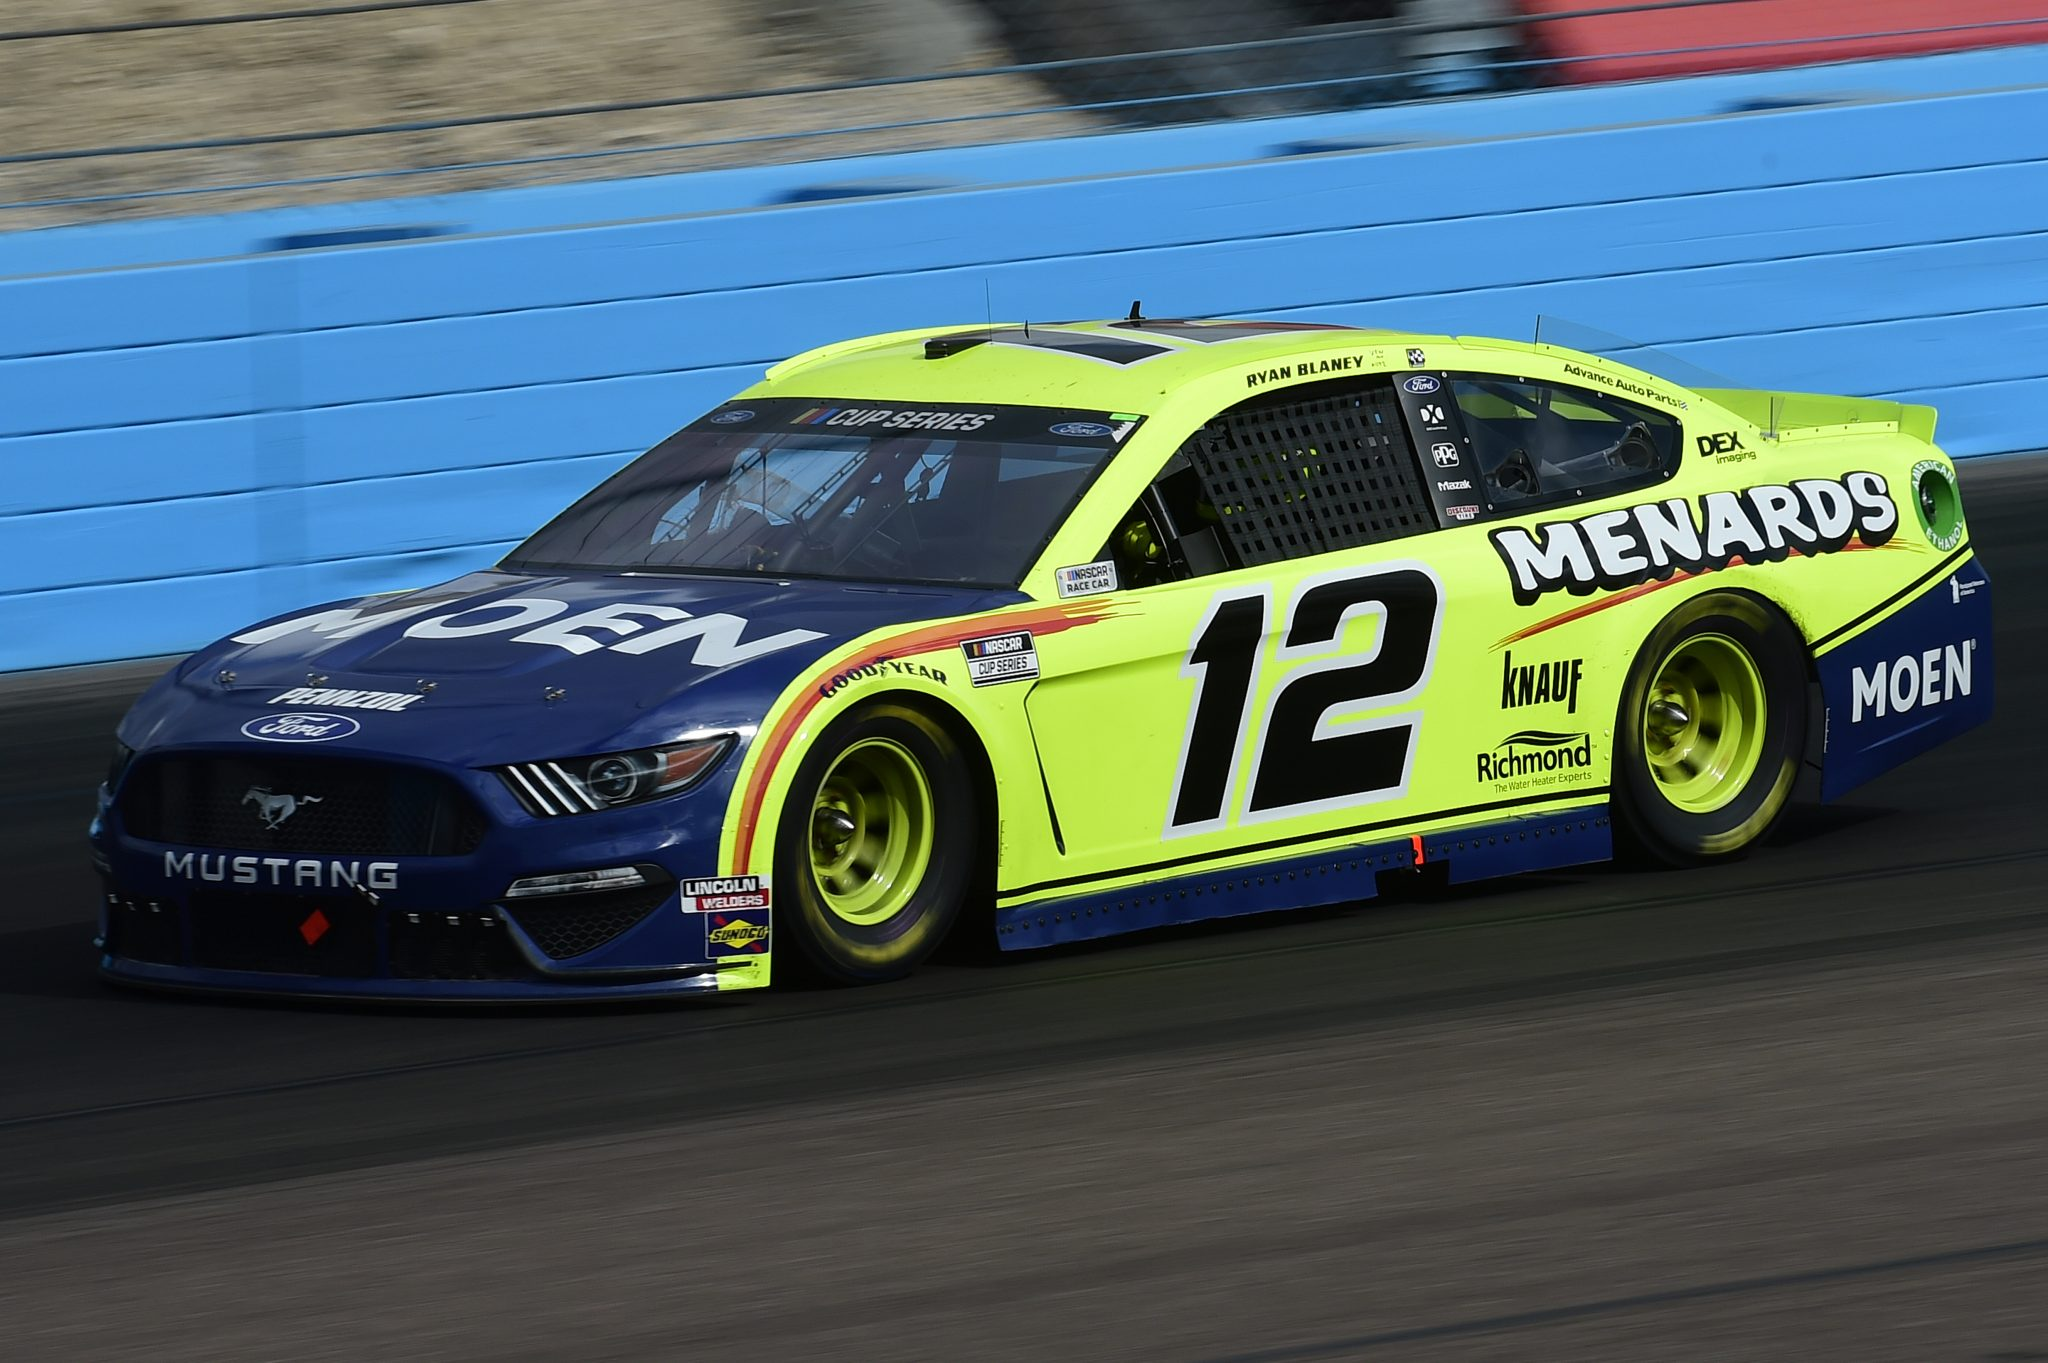 AVONDALE, ARIZONA - NOVEMBER 08: Ryan Blaney, driver of the #12 Menards/MOEN Ford, drives during the NASCAR Cup Series Season Finale 500 at Phoenix Raceway on November 08, 2020 in Avondale, Arizona. (Photo by Jared C. Tilton/Getty Images) | Getty Images